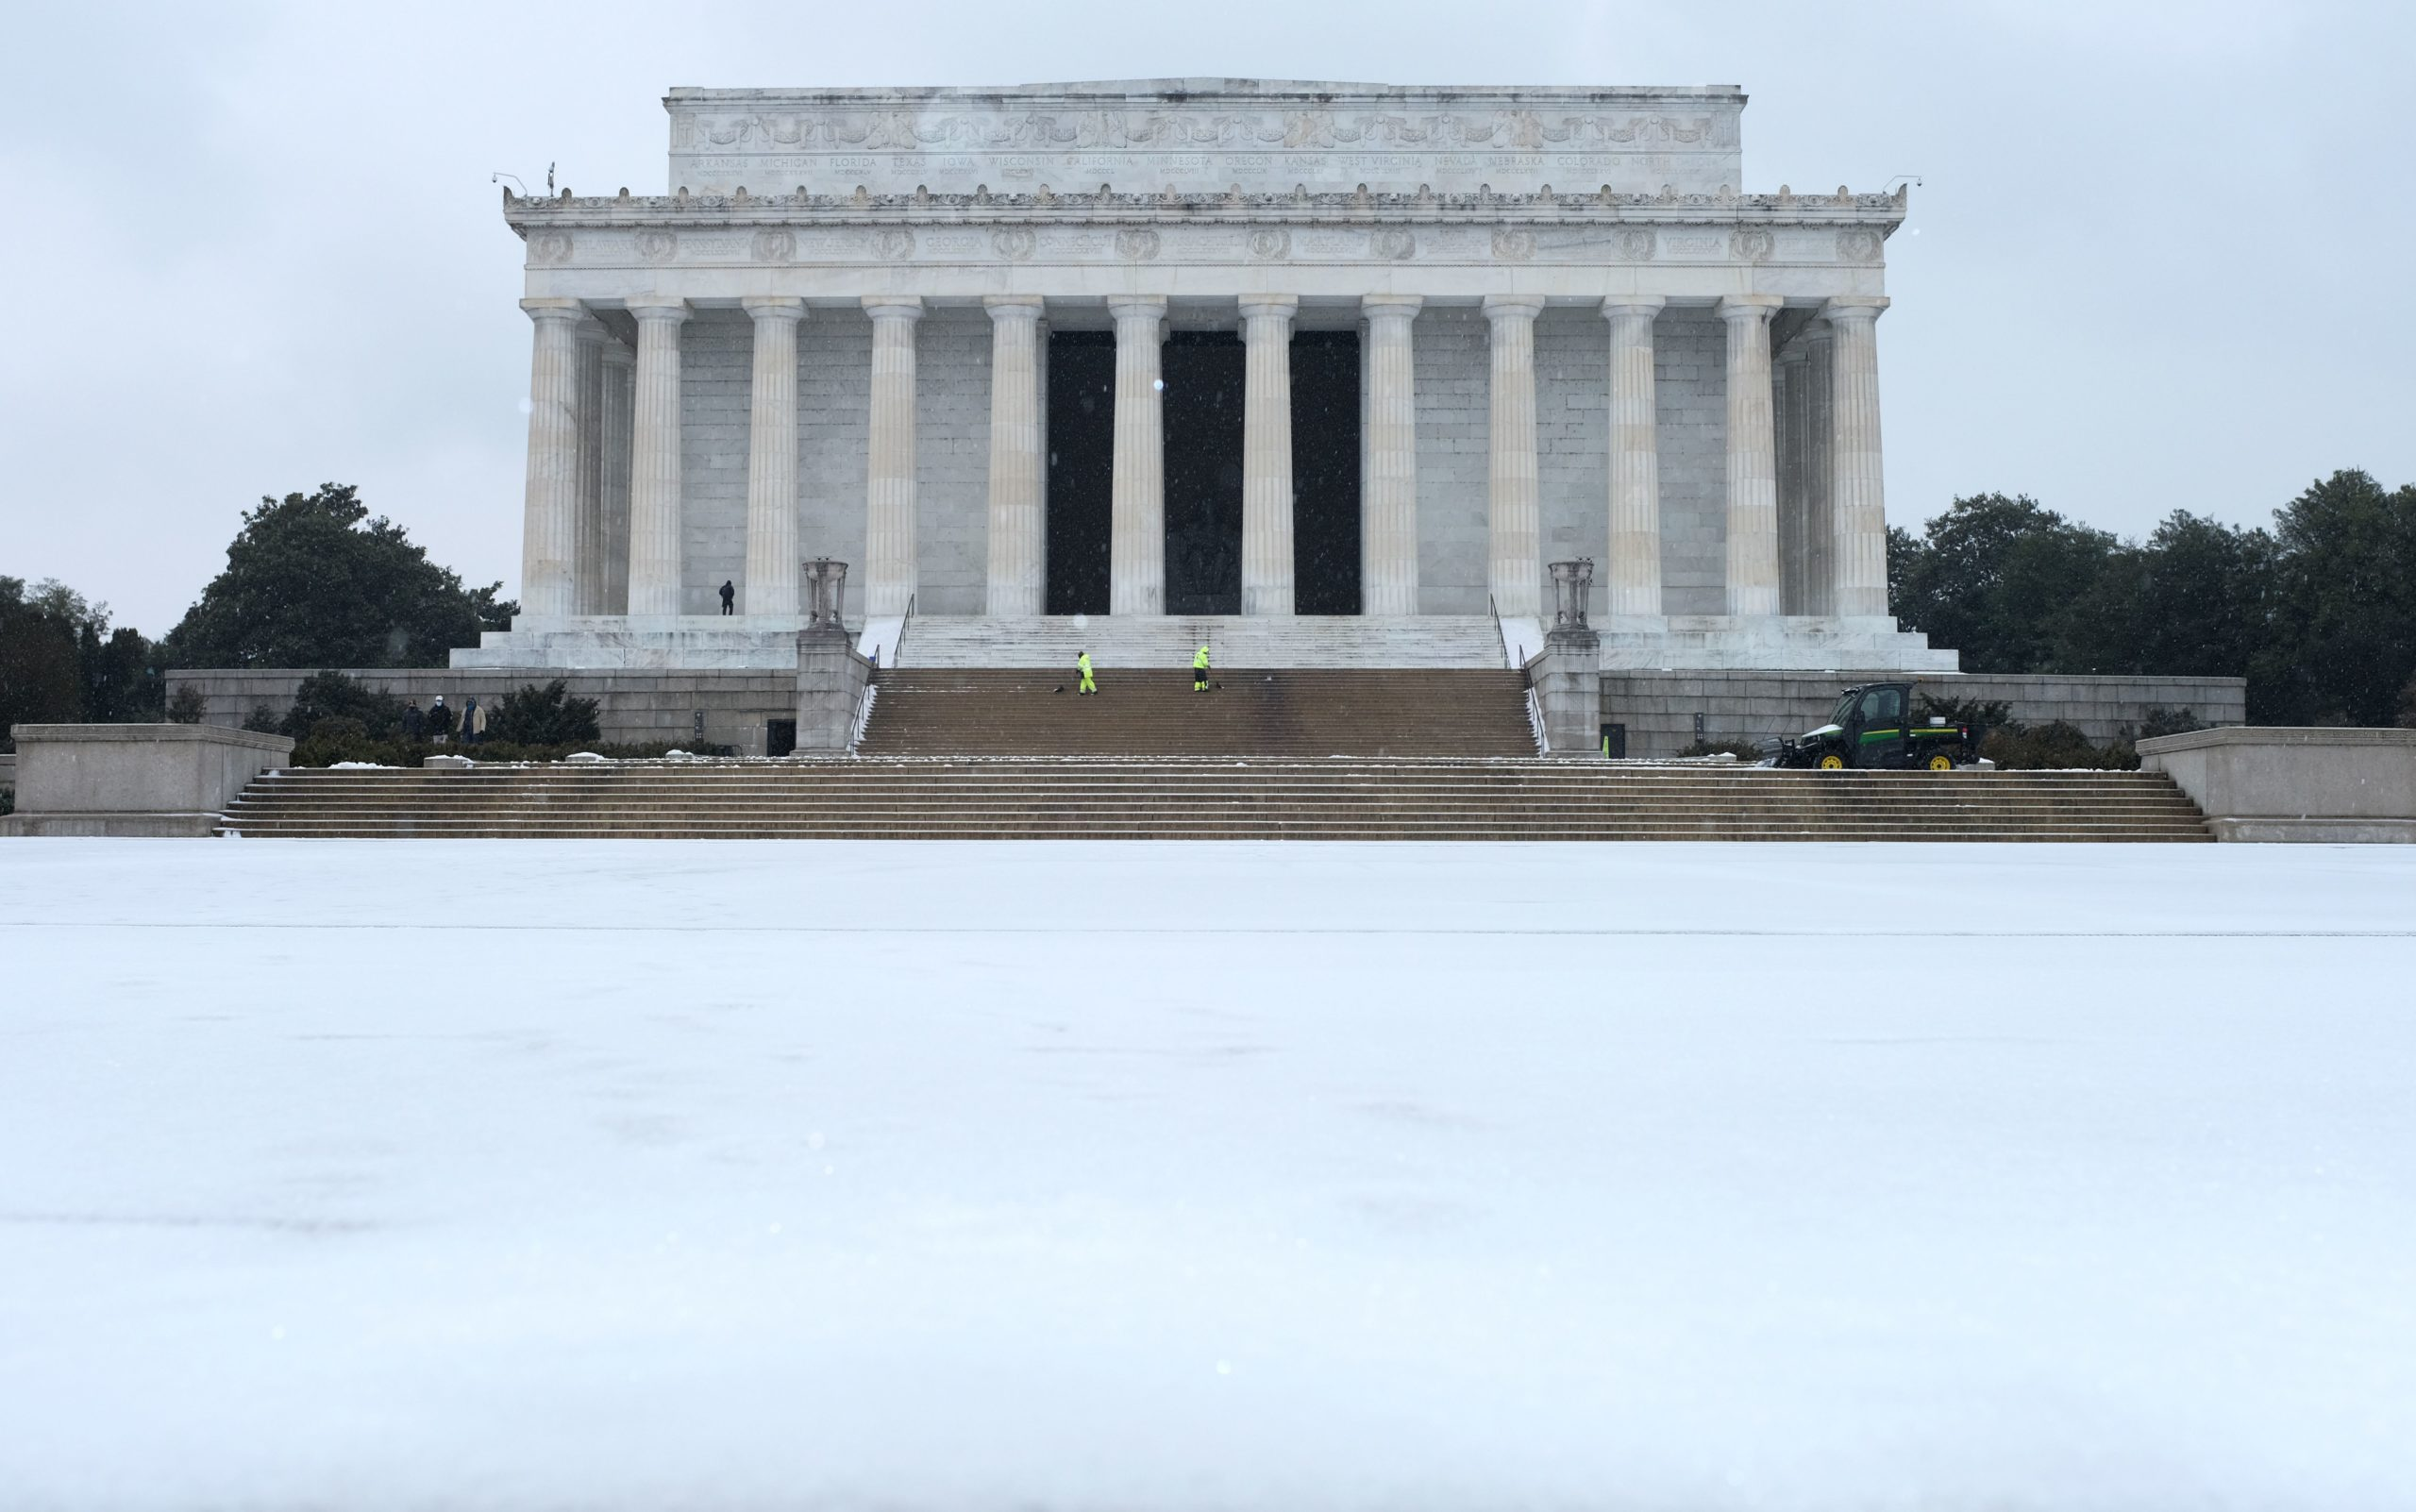 The Lincoln Memorial is seen under a blanket of light snow in Washington, DC on February 18, 2021. (Mandel Ngan/AFP via Getty Images)